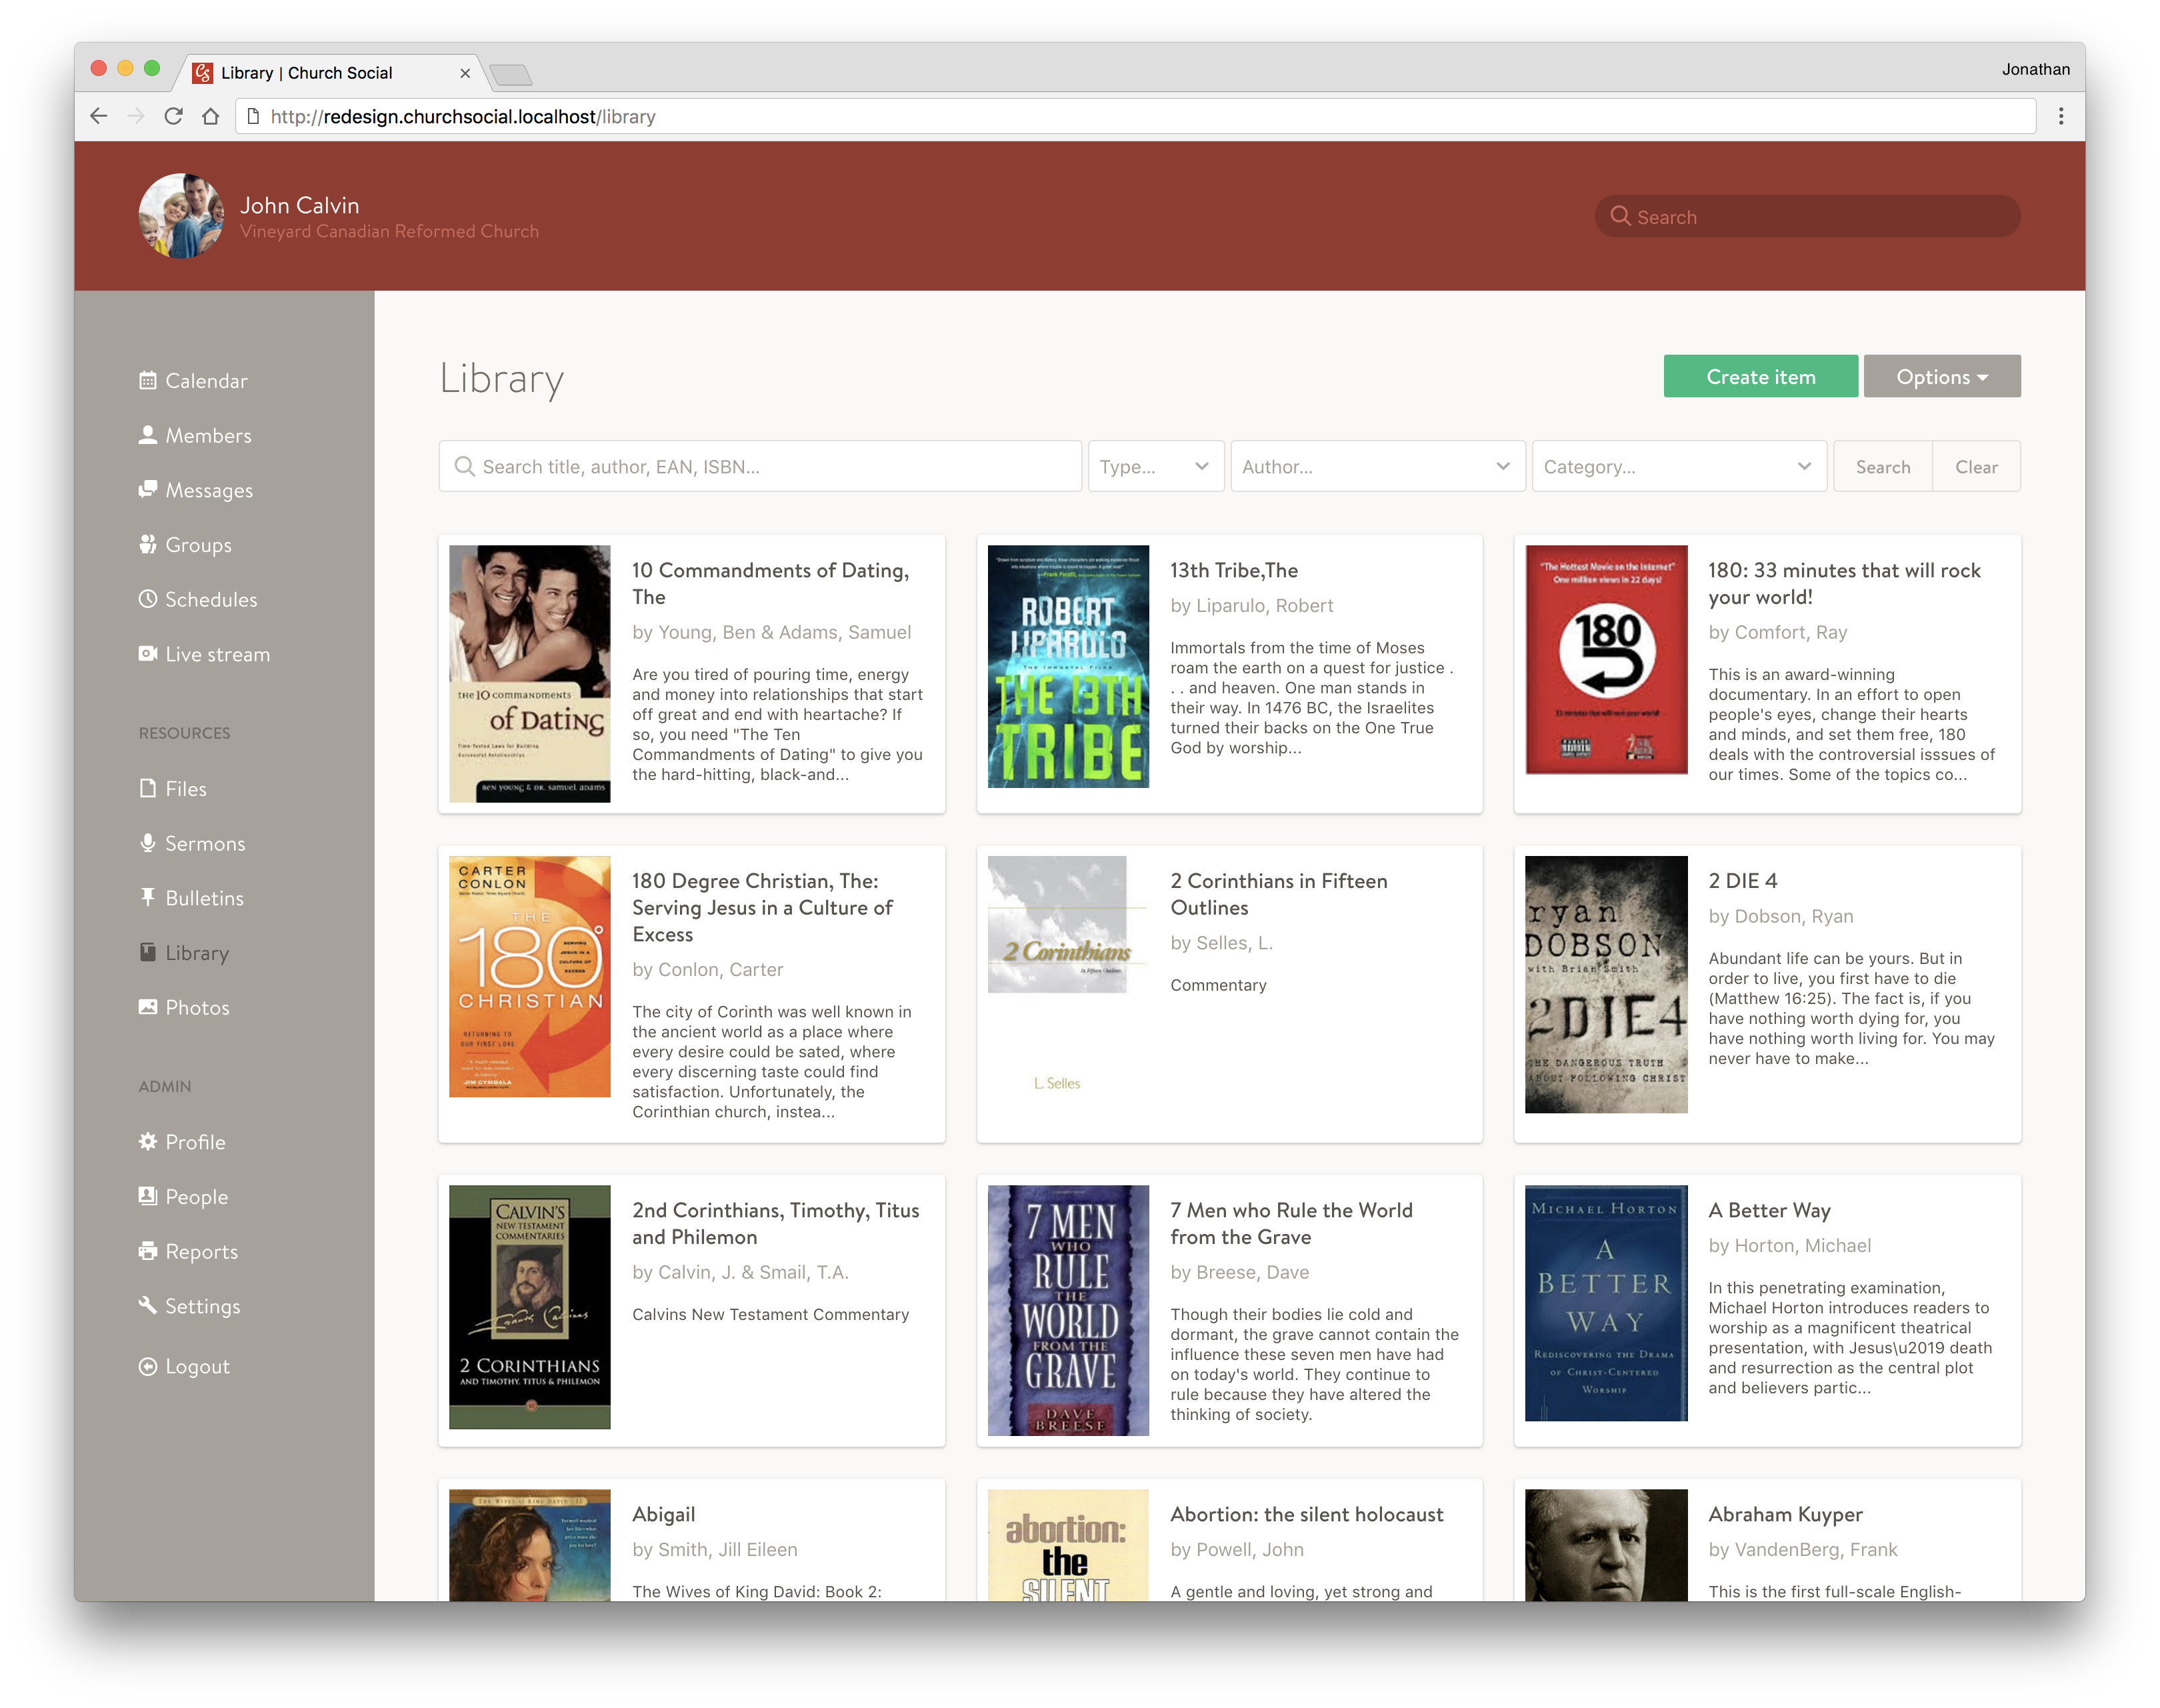 Screenshot of the library page